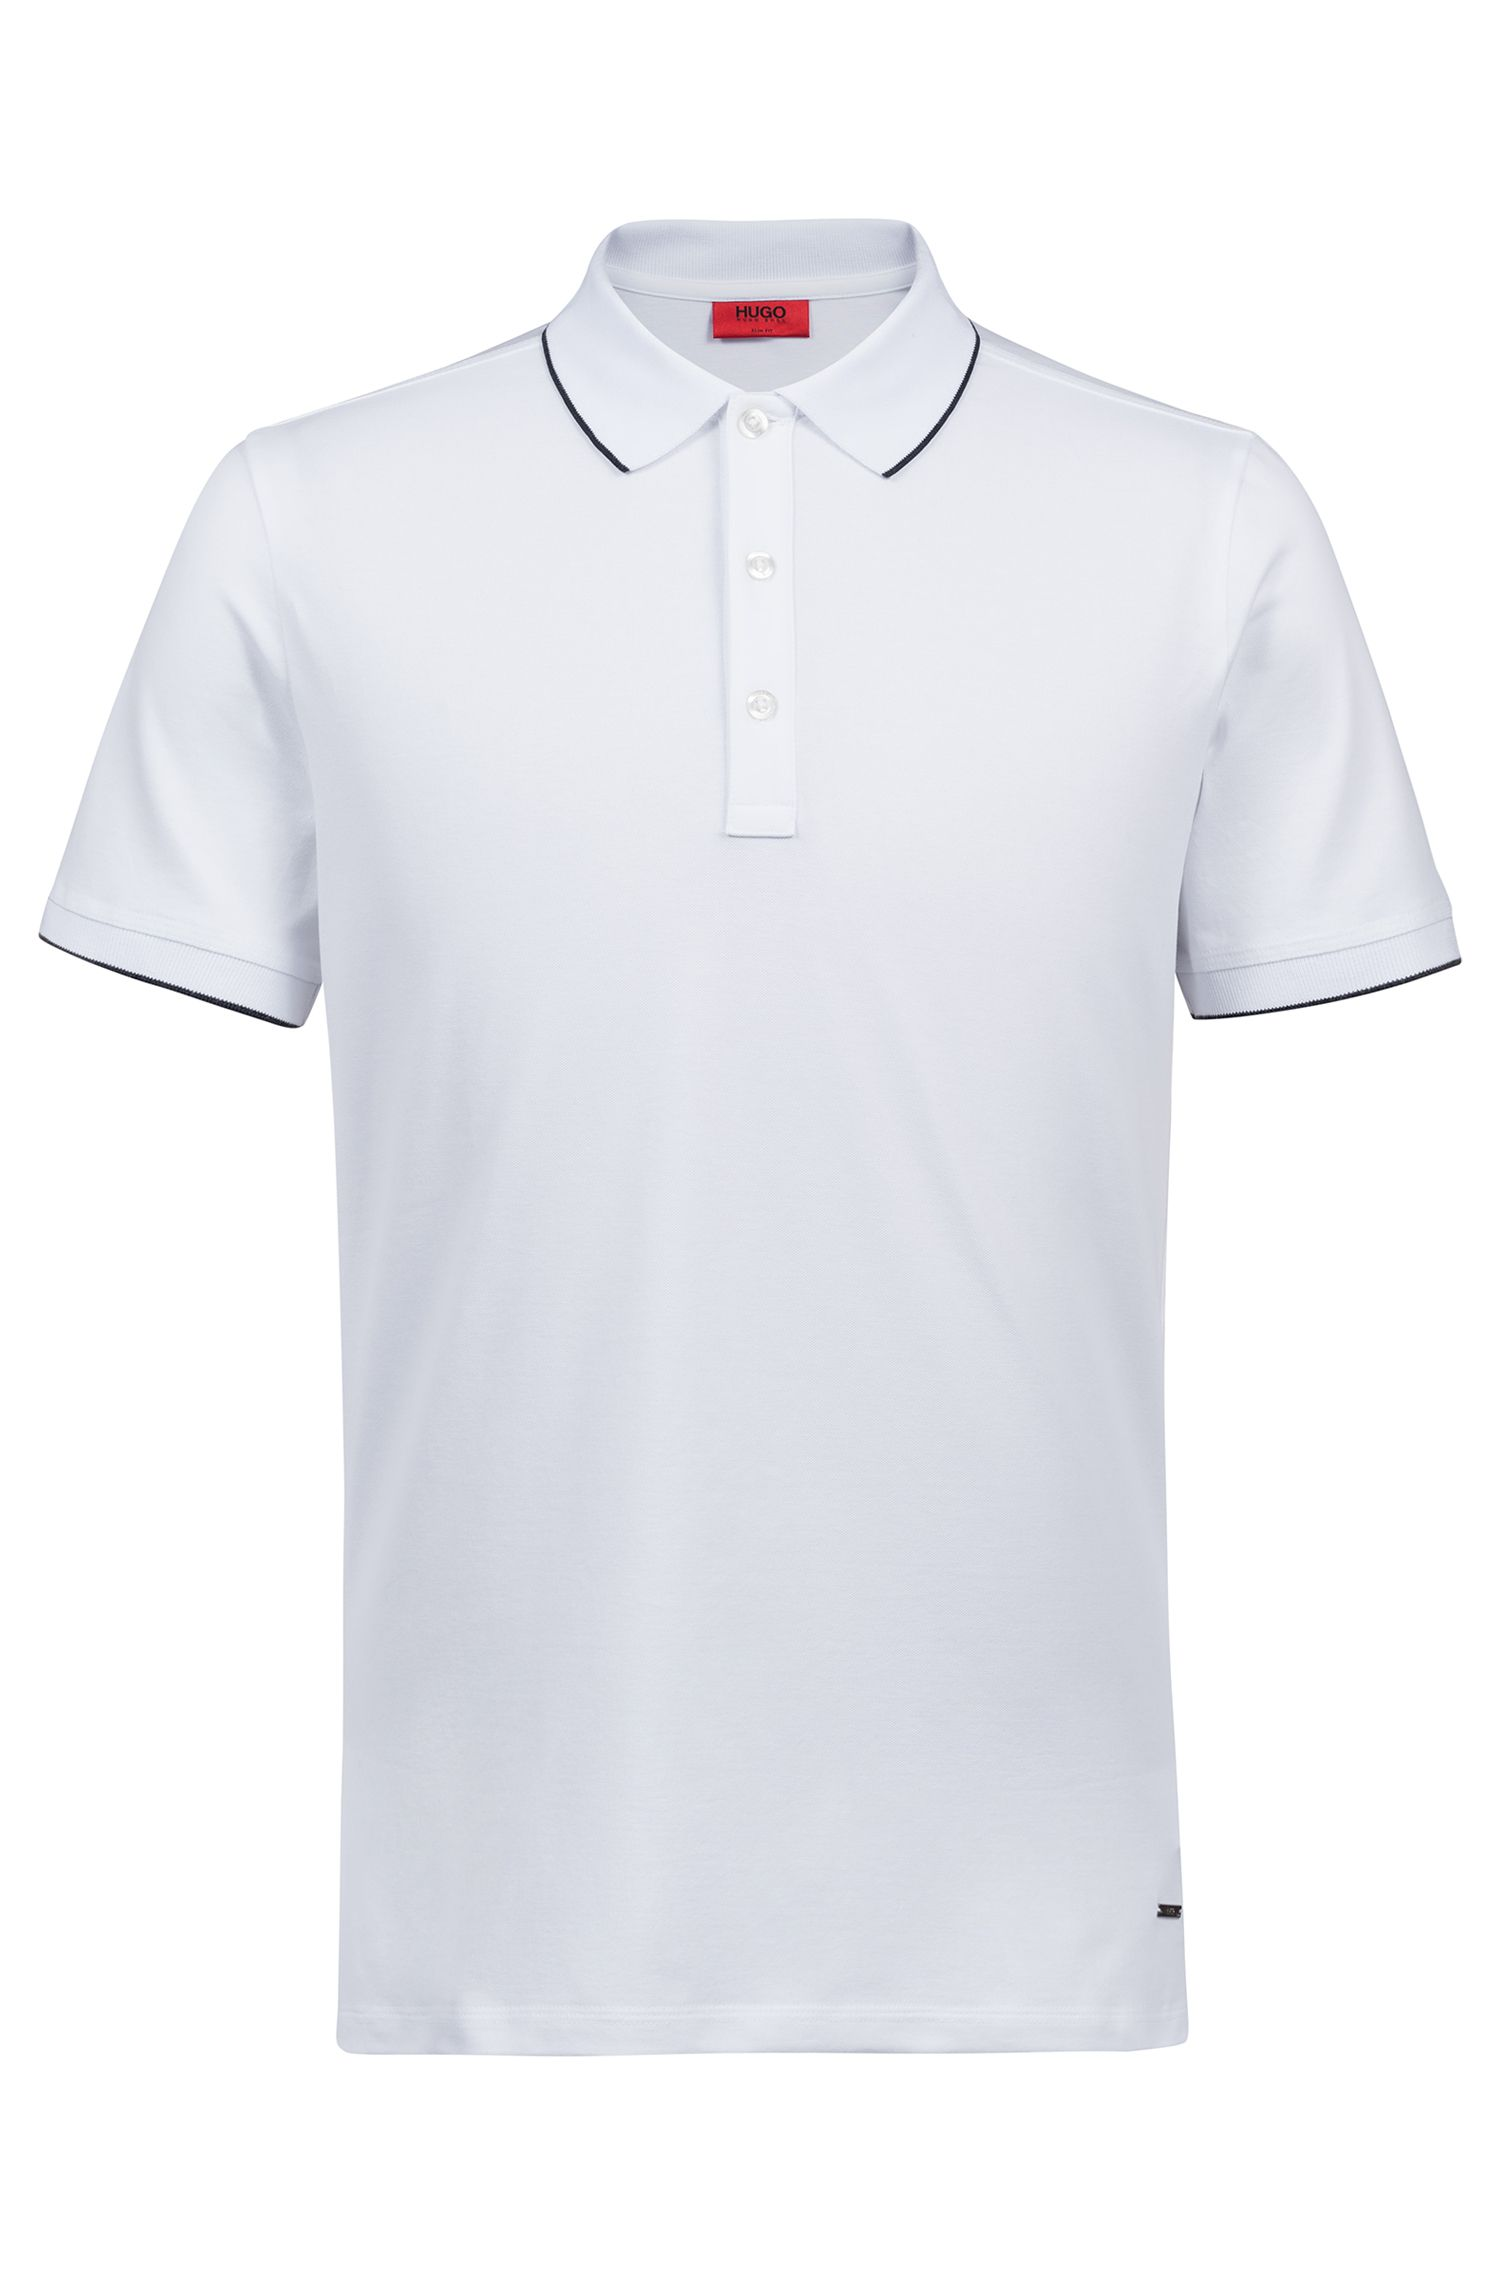 Slim-fit pique polo shirt with contrast tipping | Tuggl